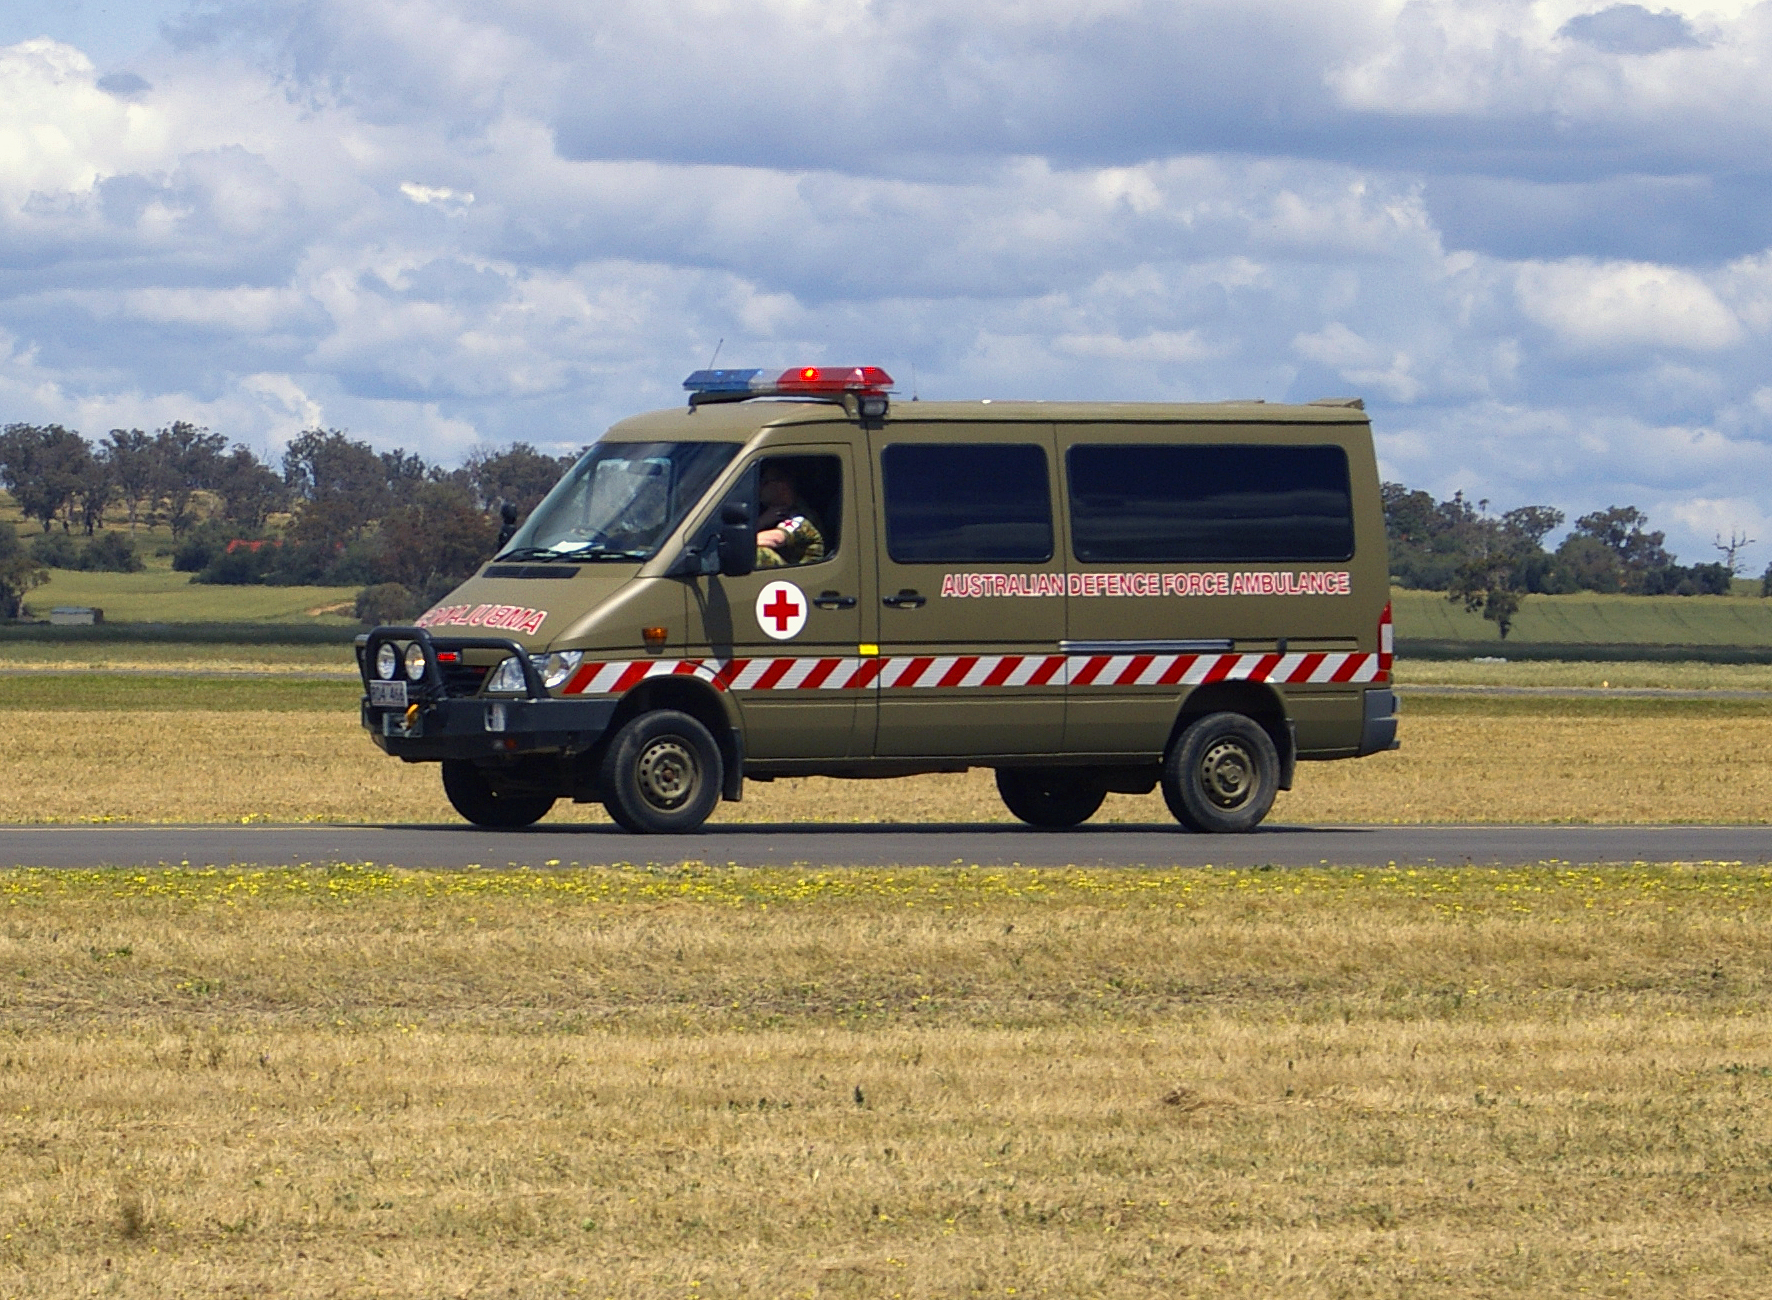 Mercedes-benz ambulance photo - 1